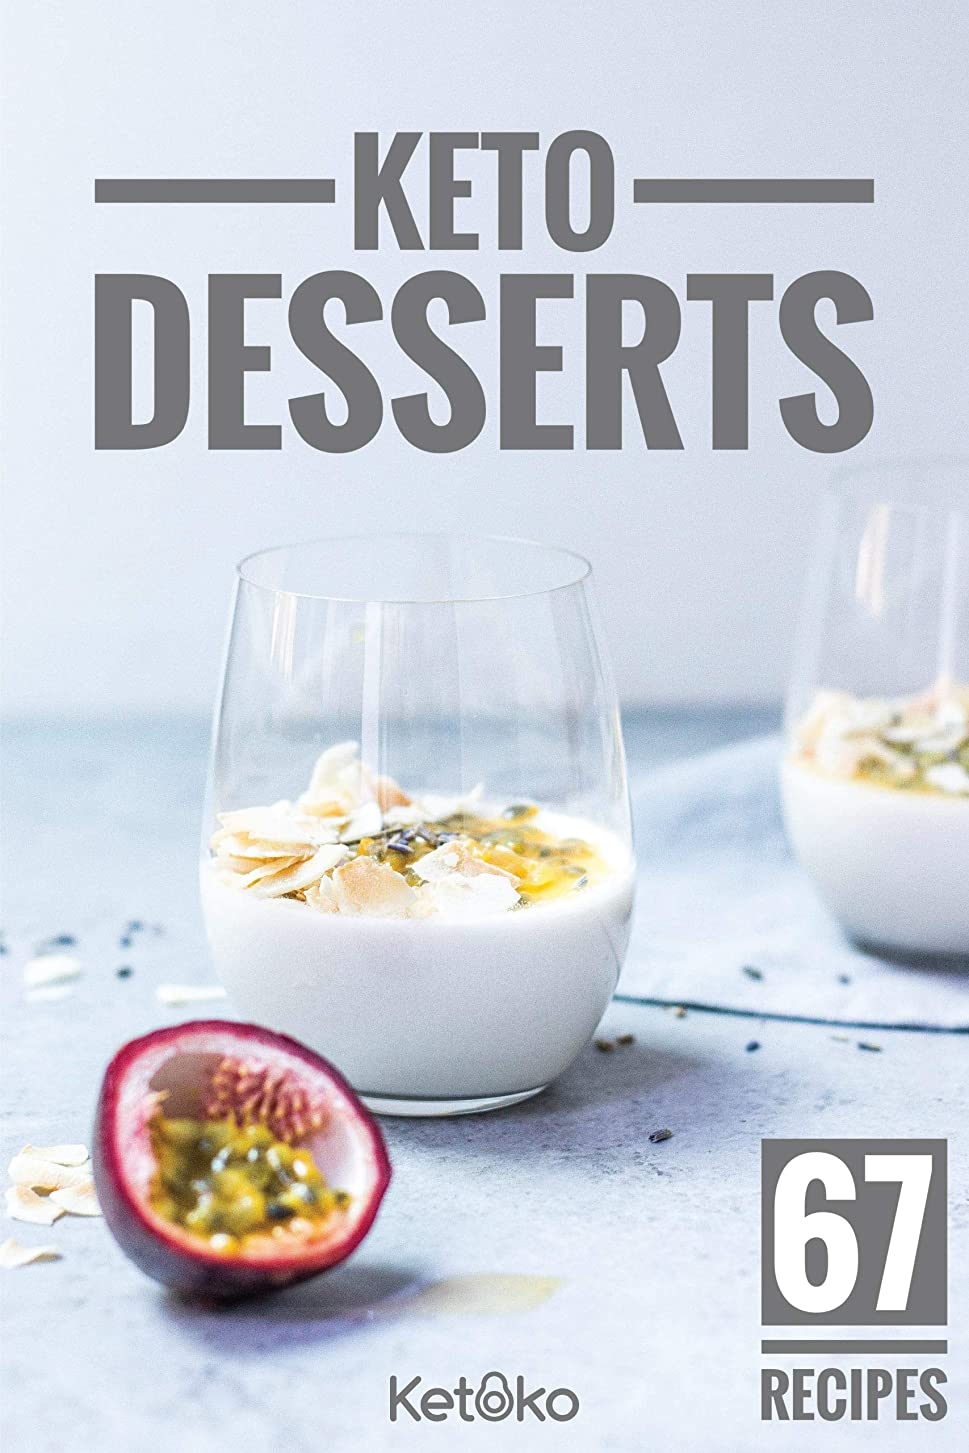 Keto Desserts: 67 Quick And Delicious Ketoko Dessert Recipes: Get some Ketoko yum in your life! Keto cakes, pies, cookies, muffins, puddings and more. ... (Ketoko Guides) (English Edition)